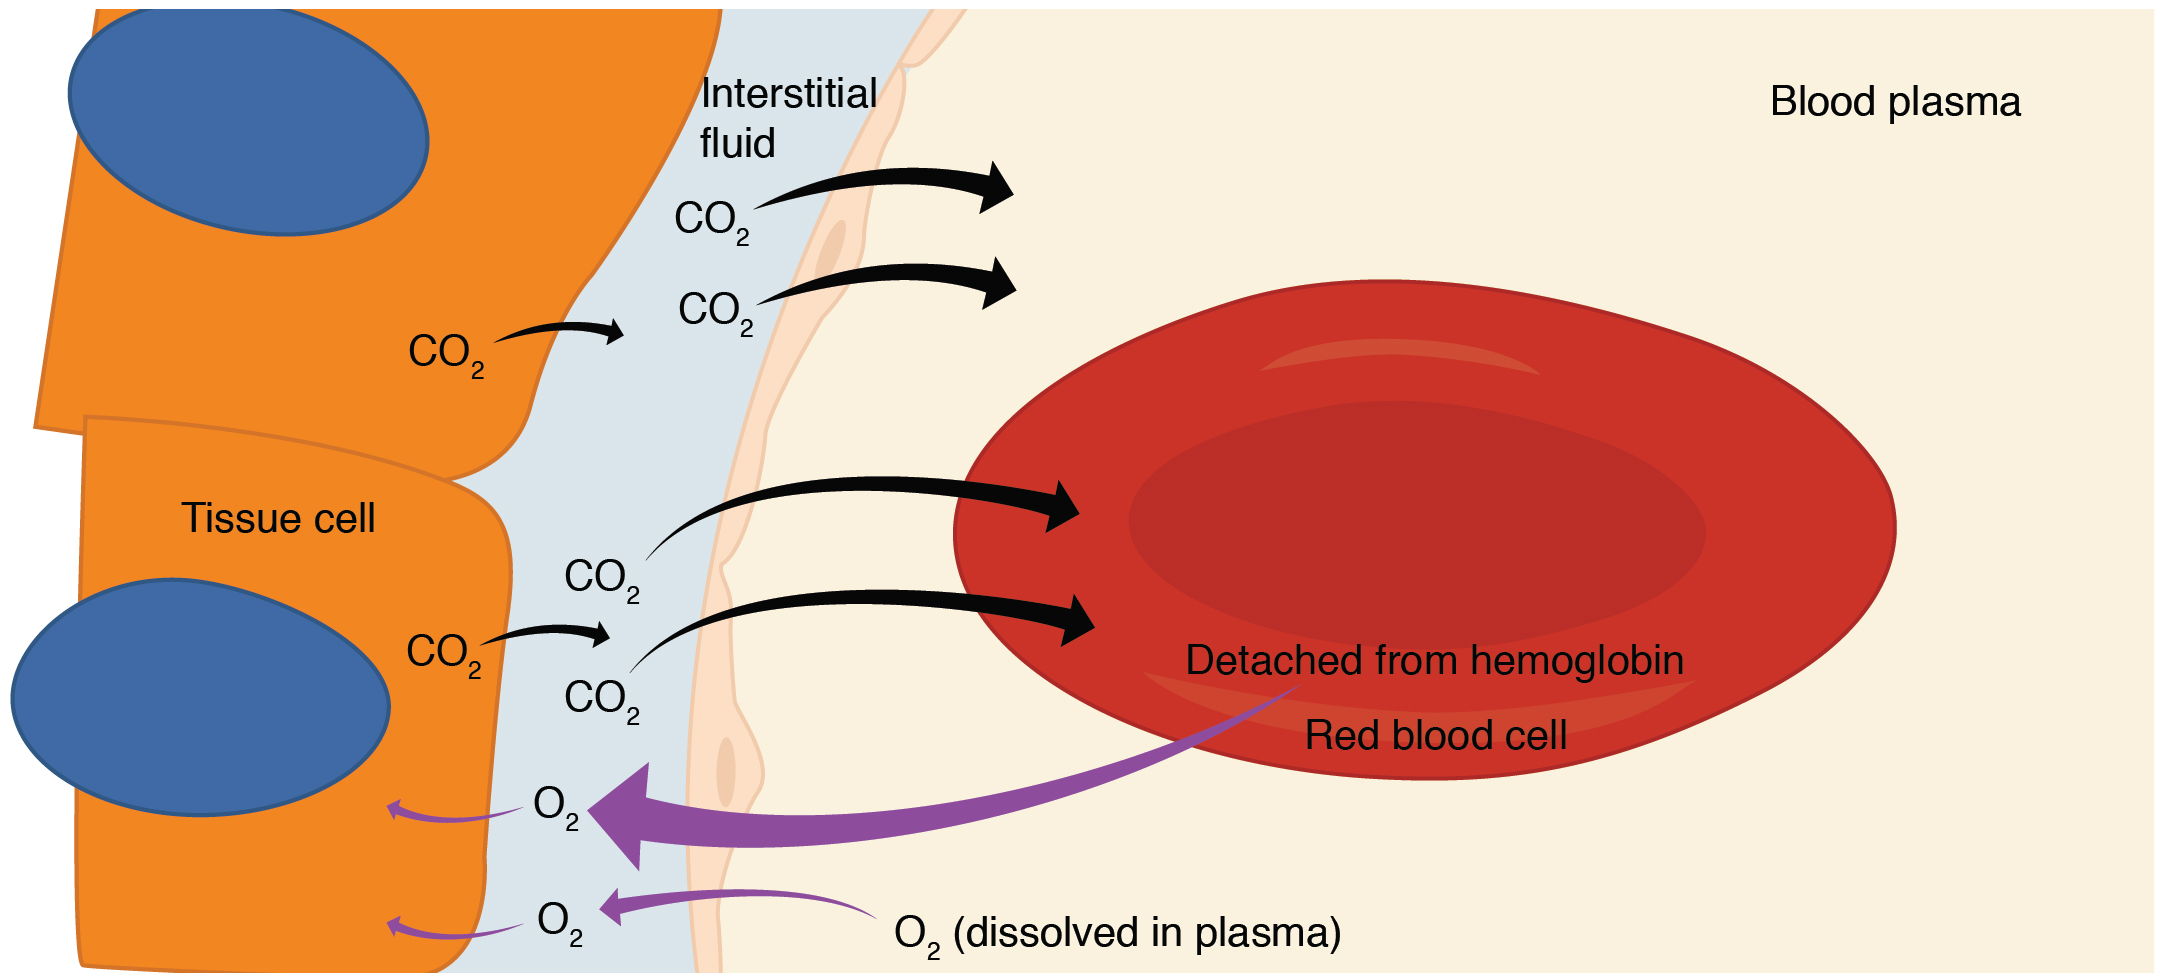 This diagram details the pathway of internal respiration. The exchange of oxygen and carbon dioxide between a red blood cell and a tissue cell is shown.